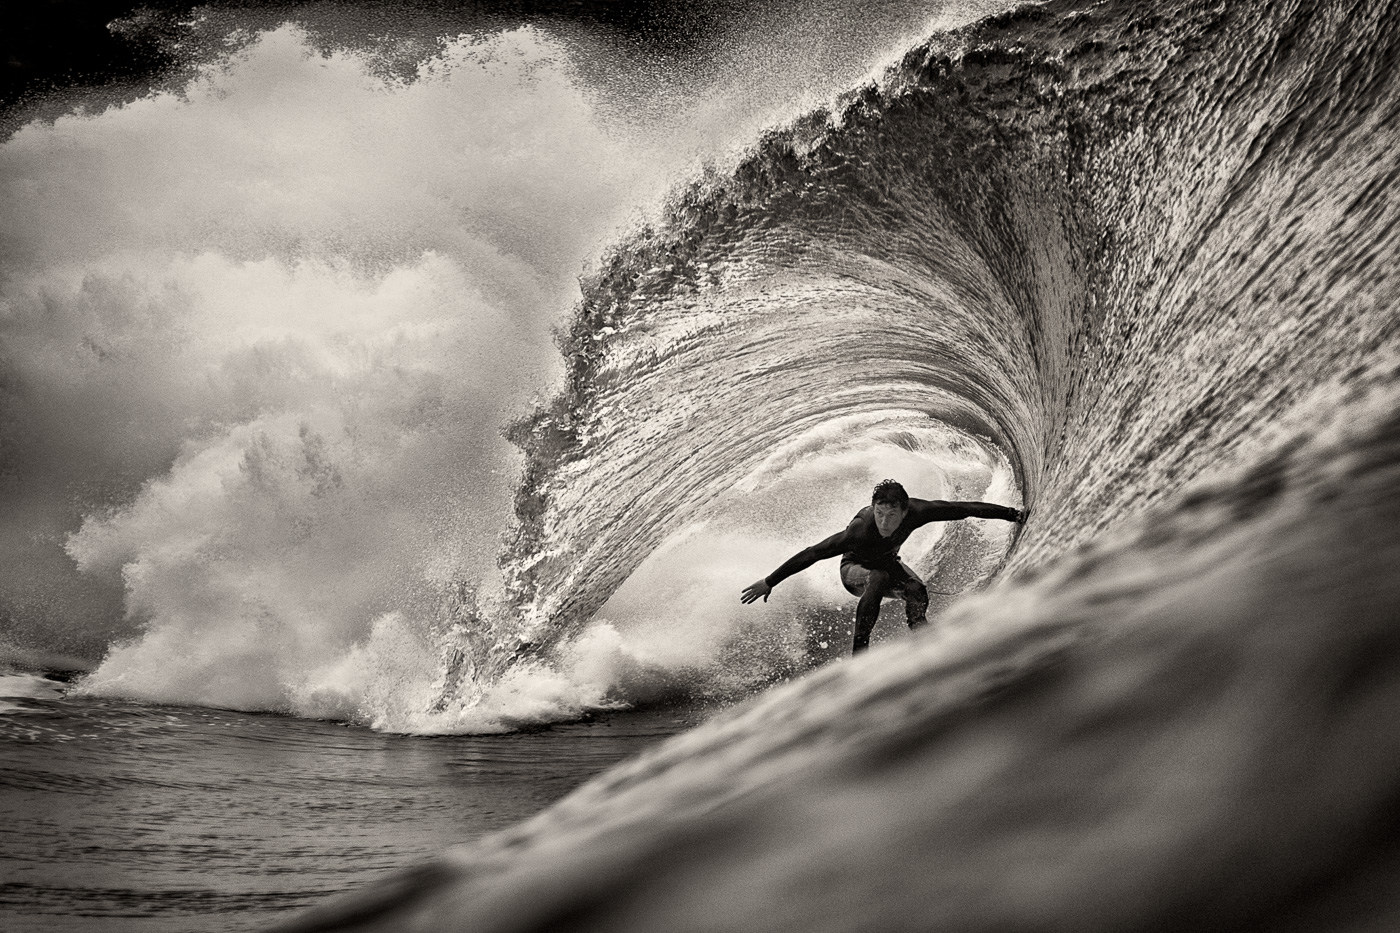 fergal smith surfing black and white